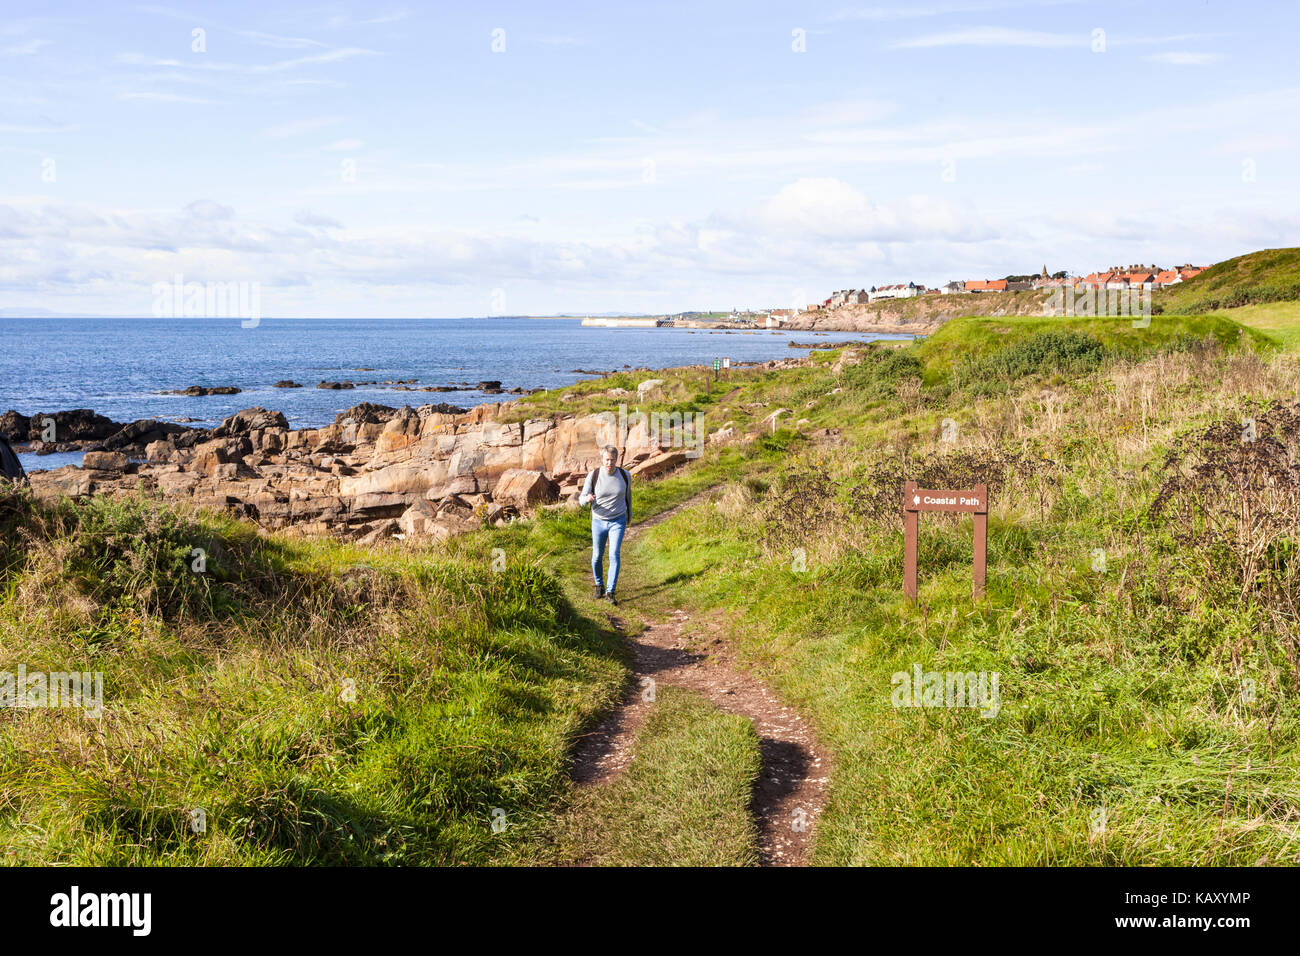 A hiker on the Fife Coastal Path between Anstruther and Pittenweem, Fife, Scotland UK - Stock Image